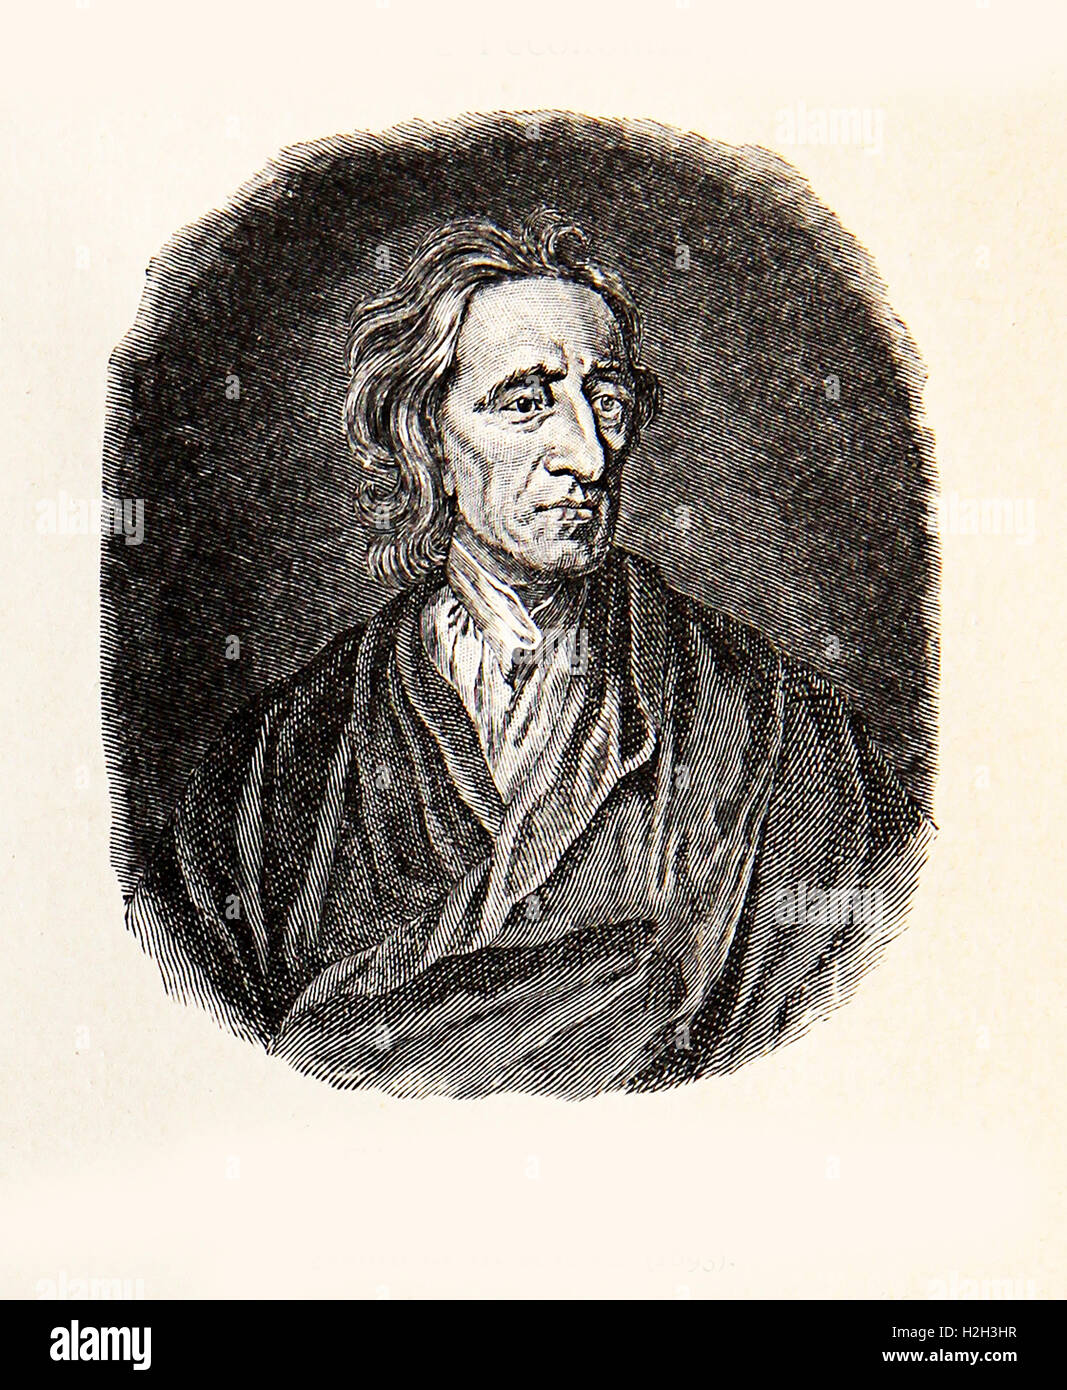 Engraving portrait of John Locke influential Enlightenment thinker and father of Liberalism - Stock Image